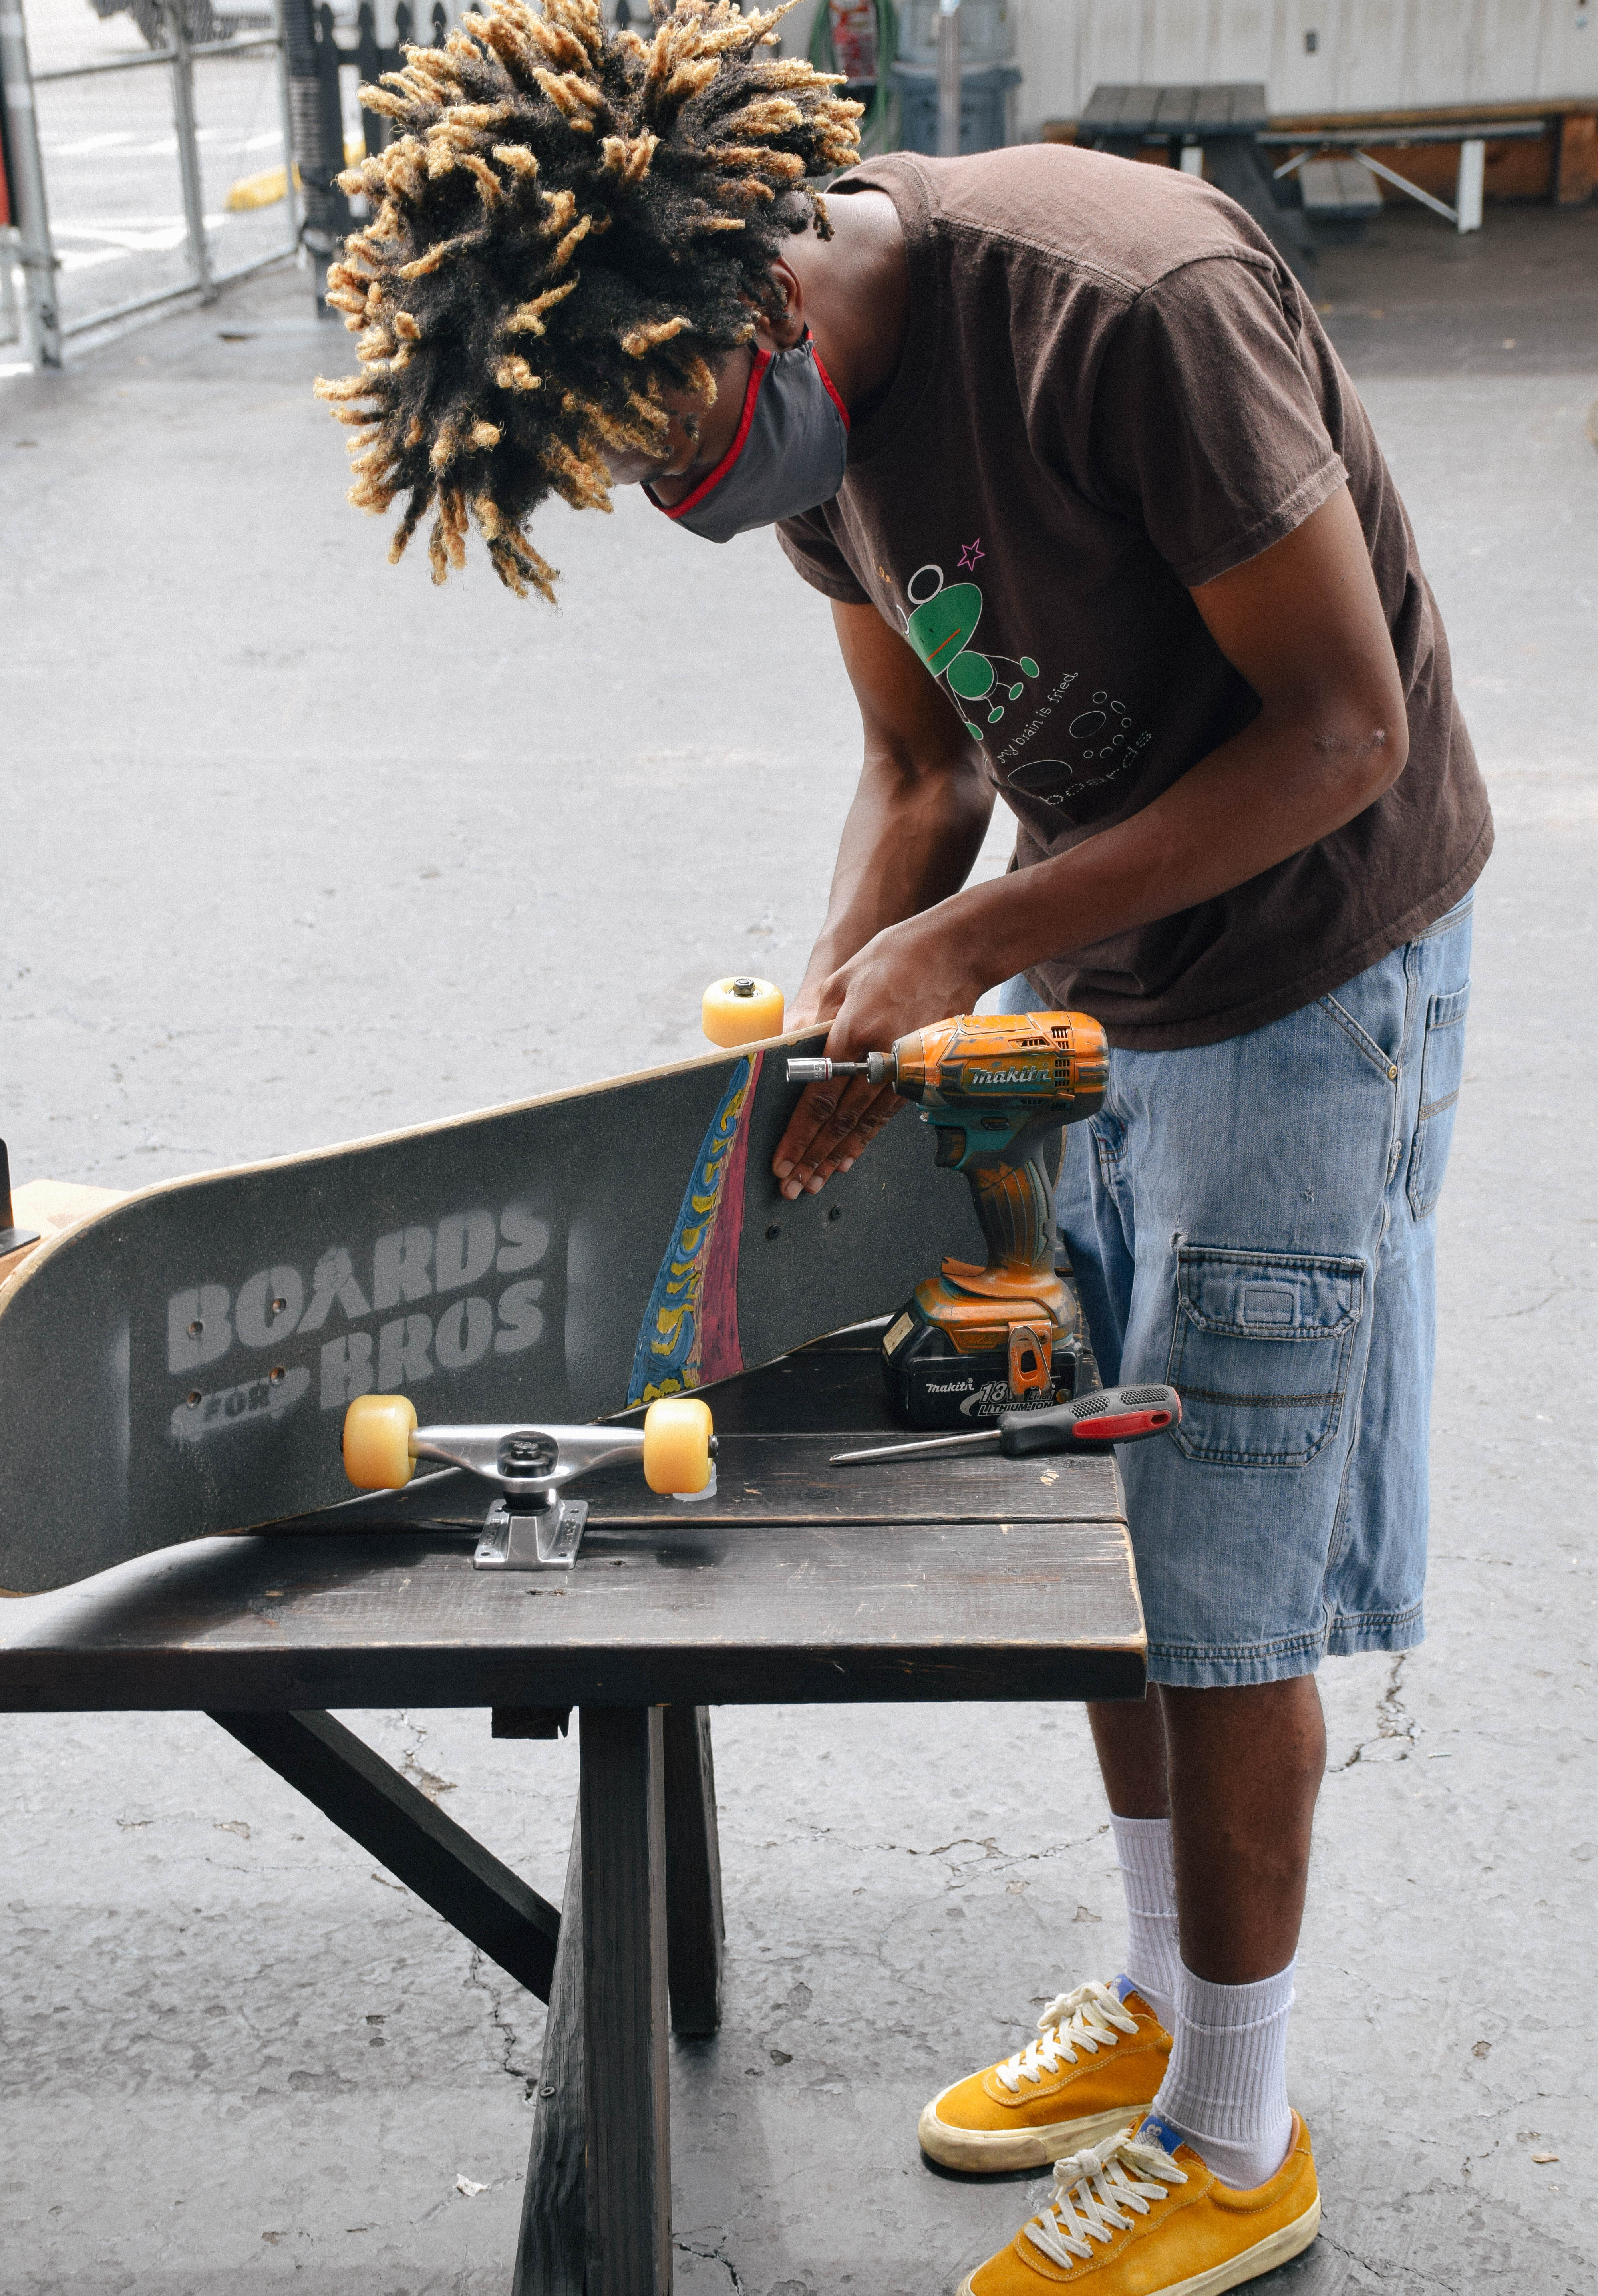 Boards For Bros Giveback